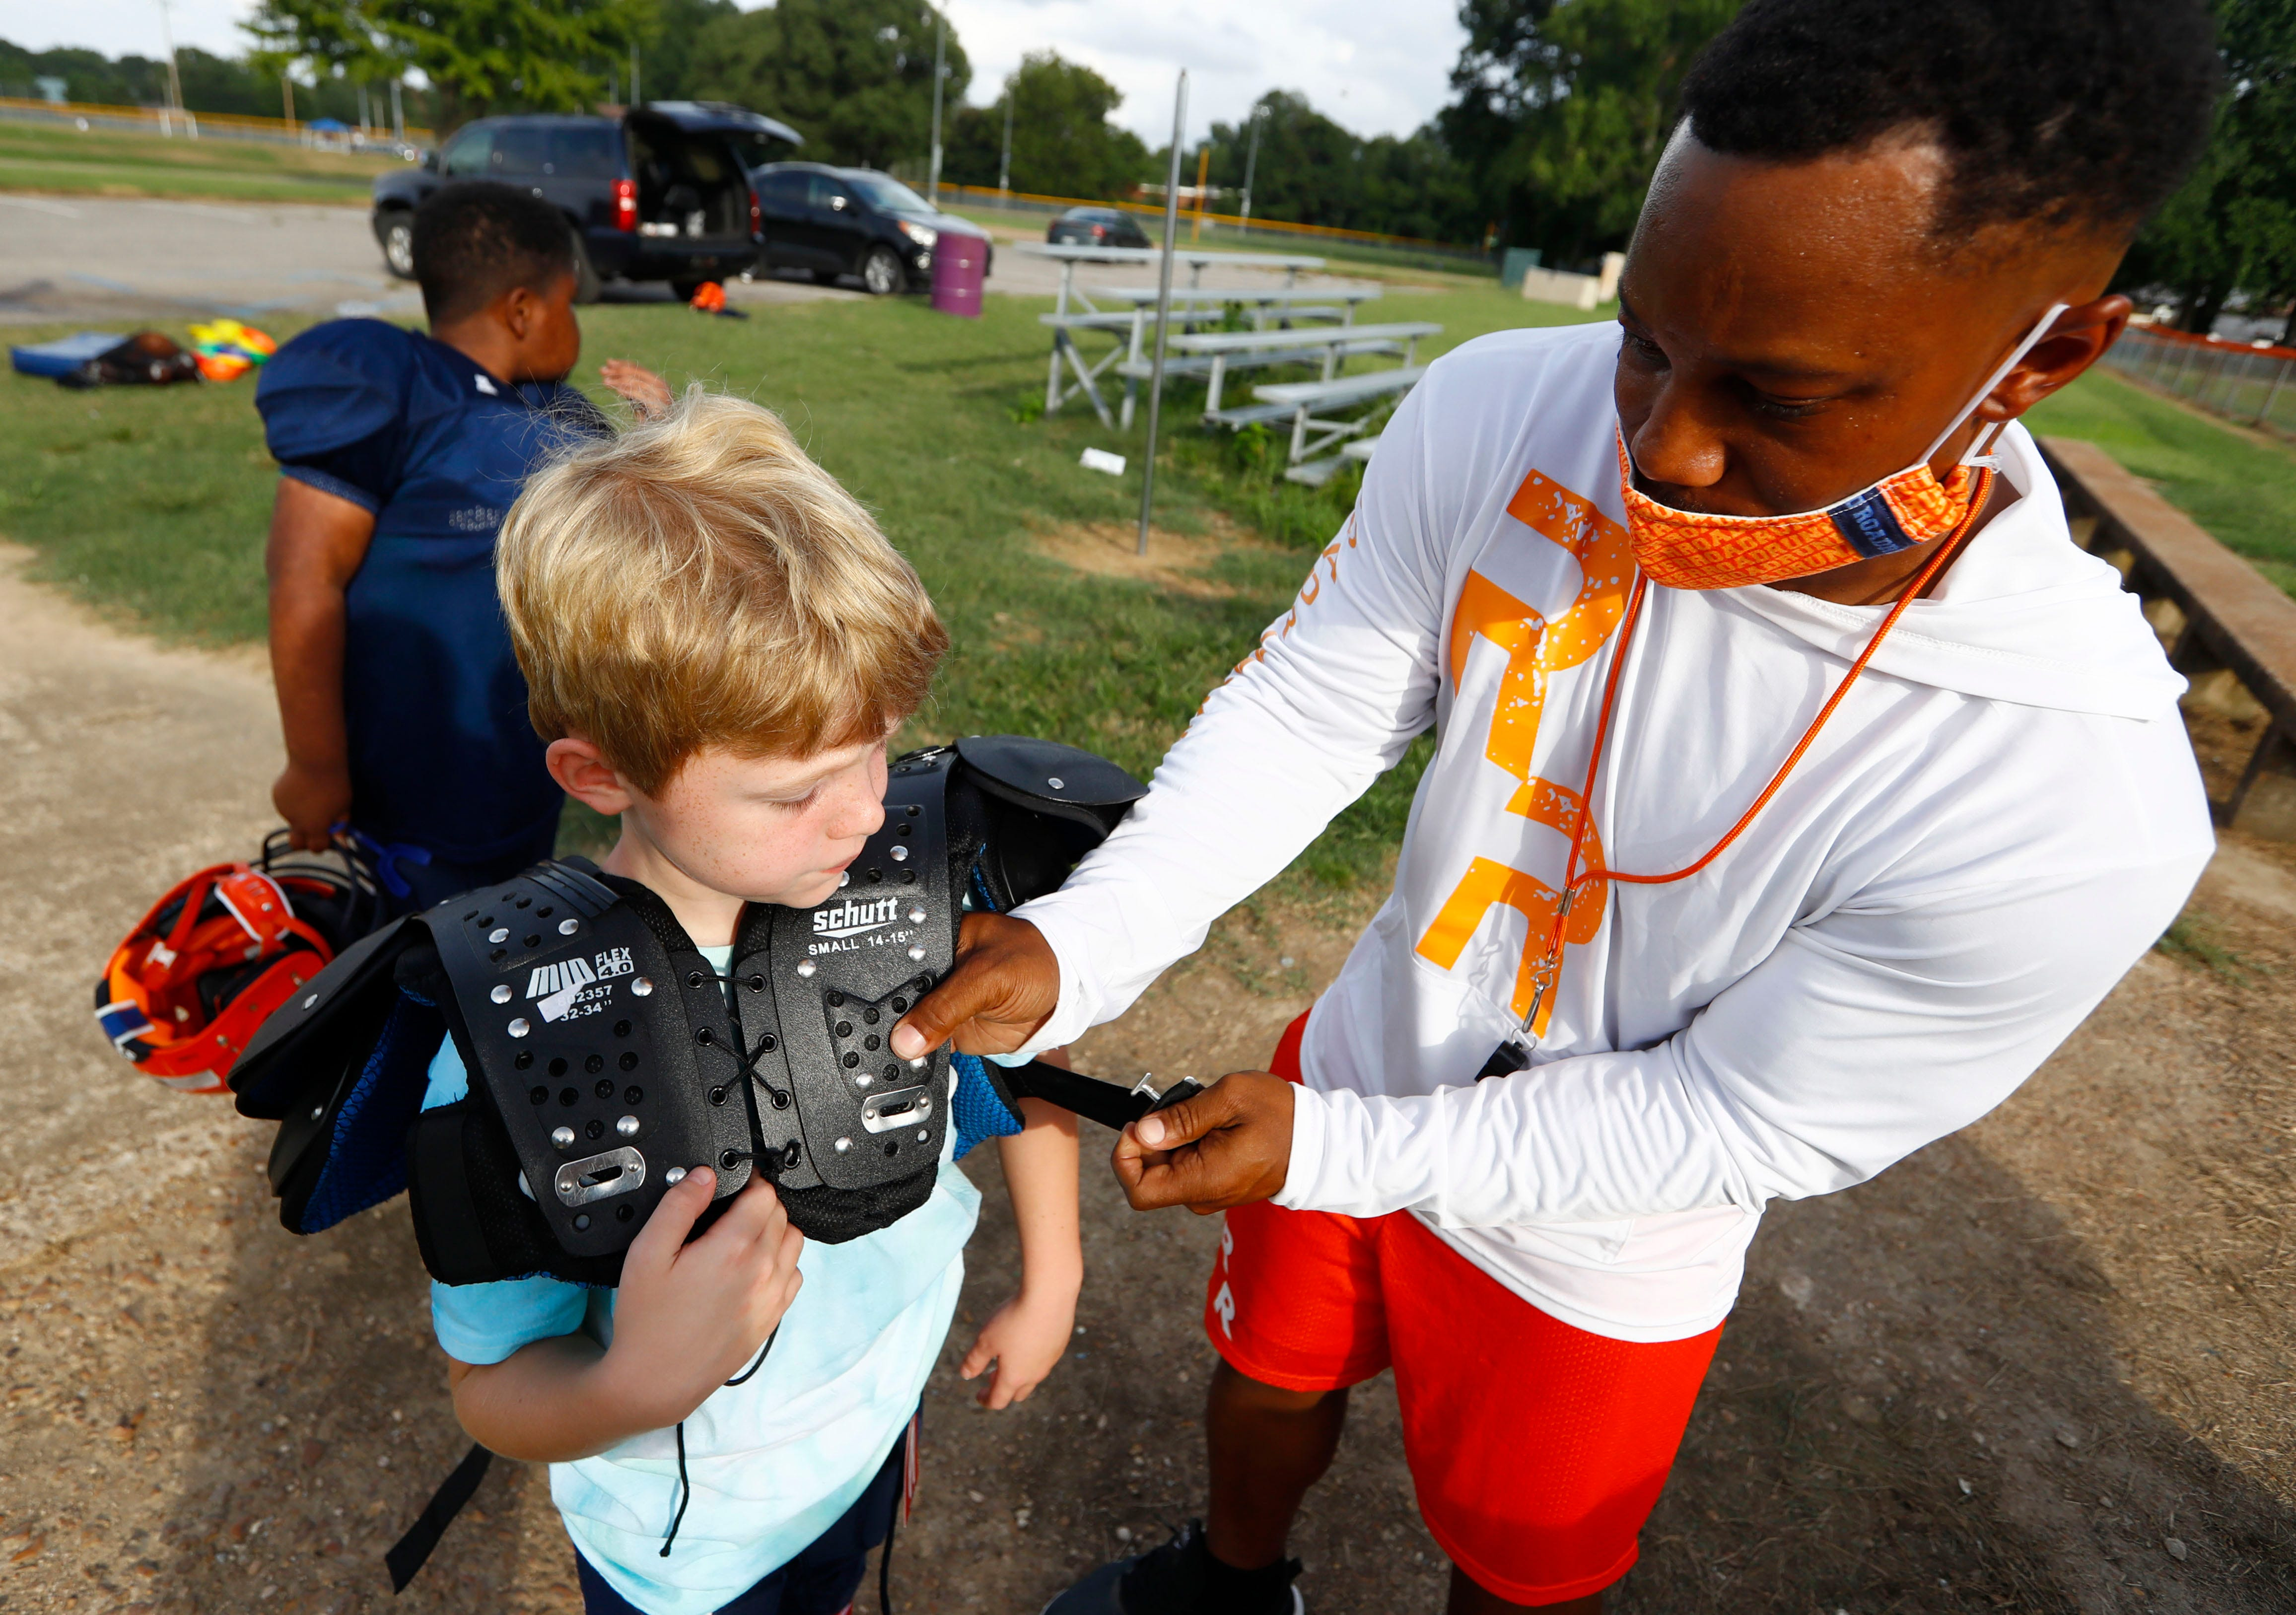 Coach Antoine Smith helps Porter Throckmorton, 8, with his pads before practice at Willow Park on Tuesday, Sept. 1 with the Mount Moriah Road Runners, a youth program created by the Sheriff's & Police Activities League of Memphis and Shelby County, a non-profit mentoring organization.